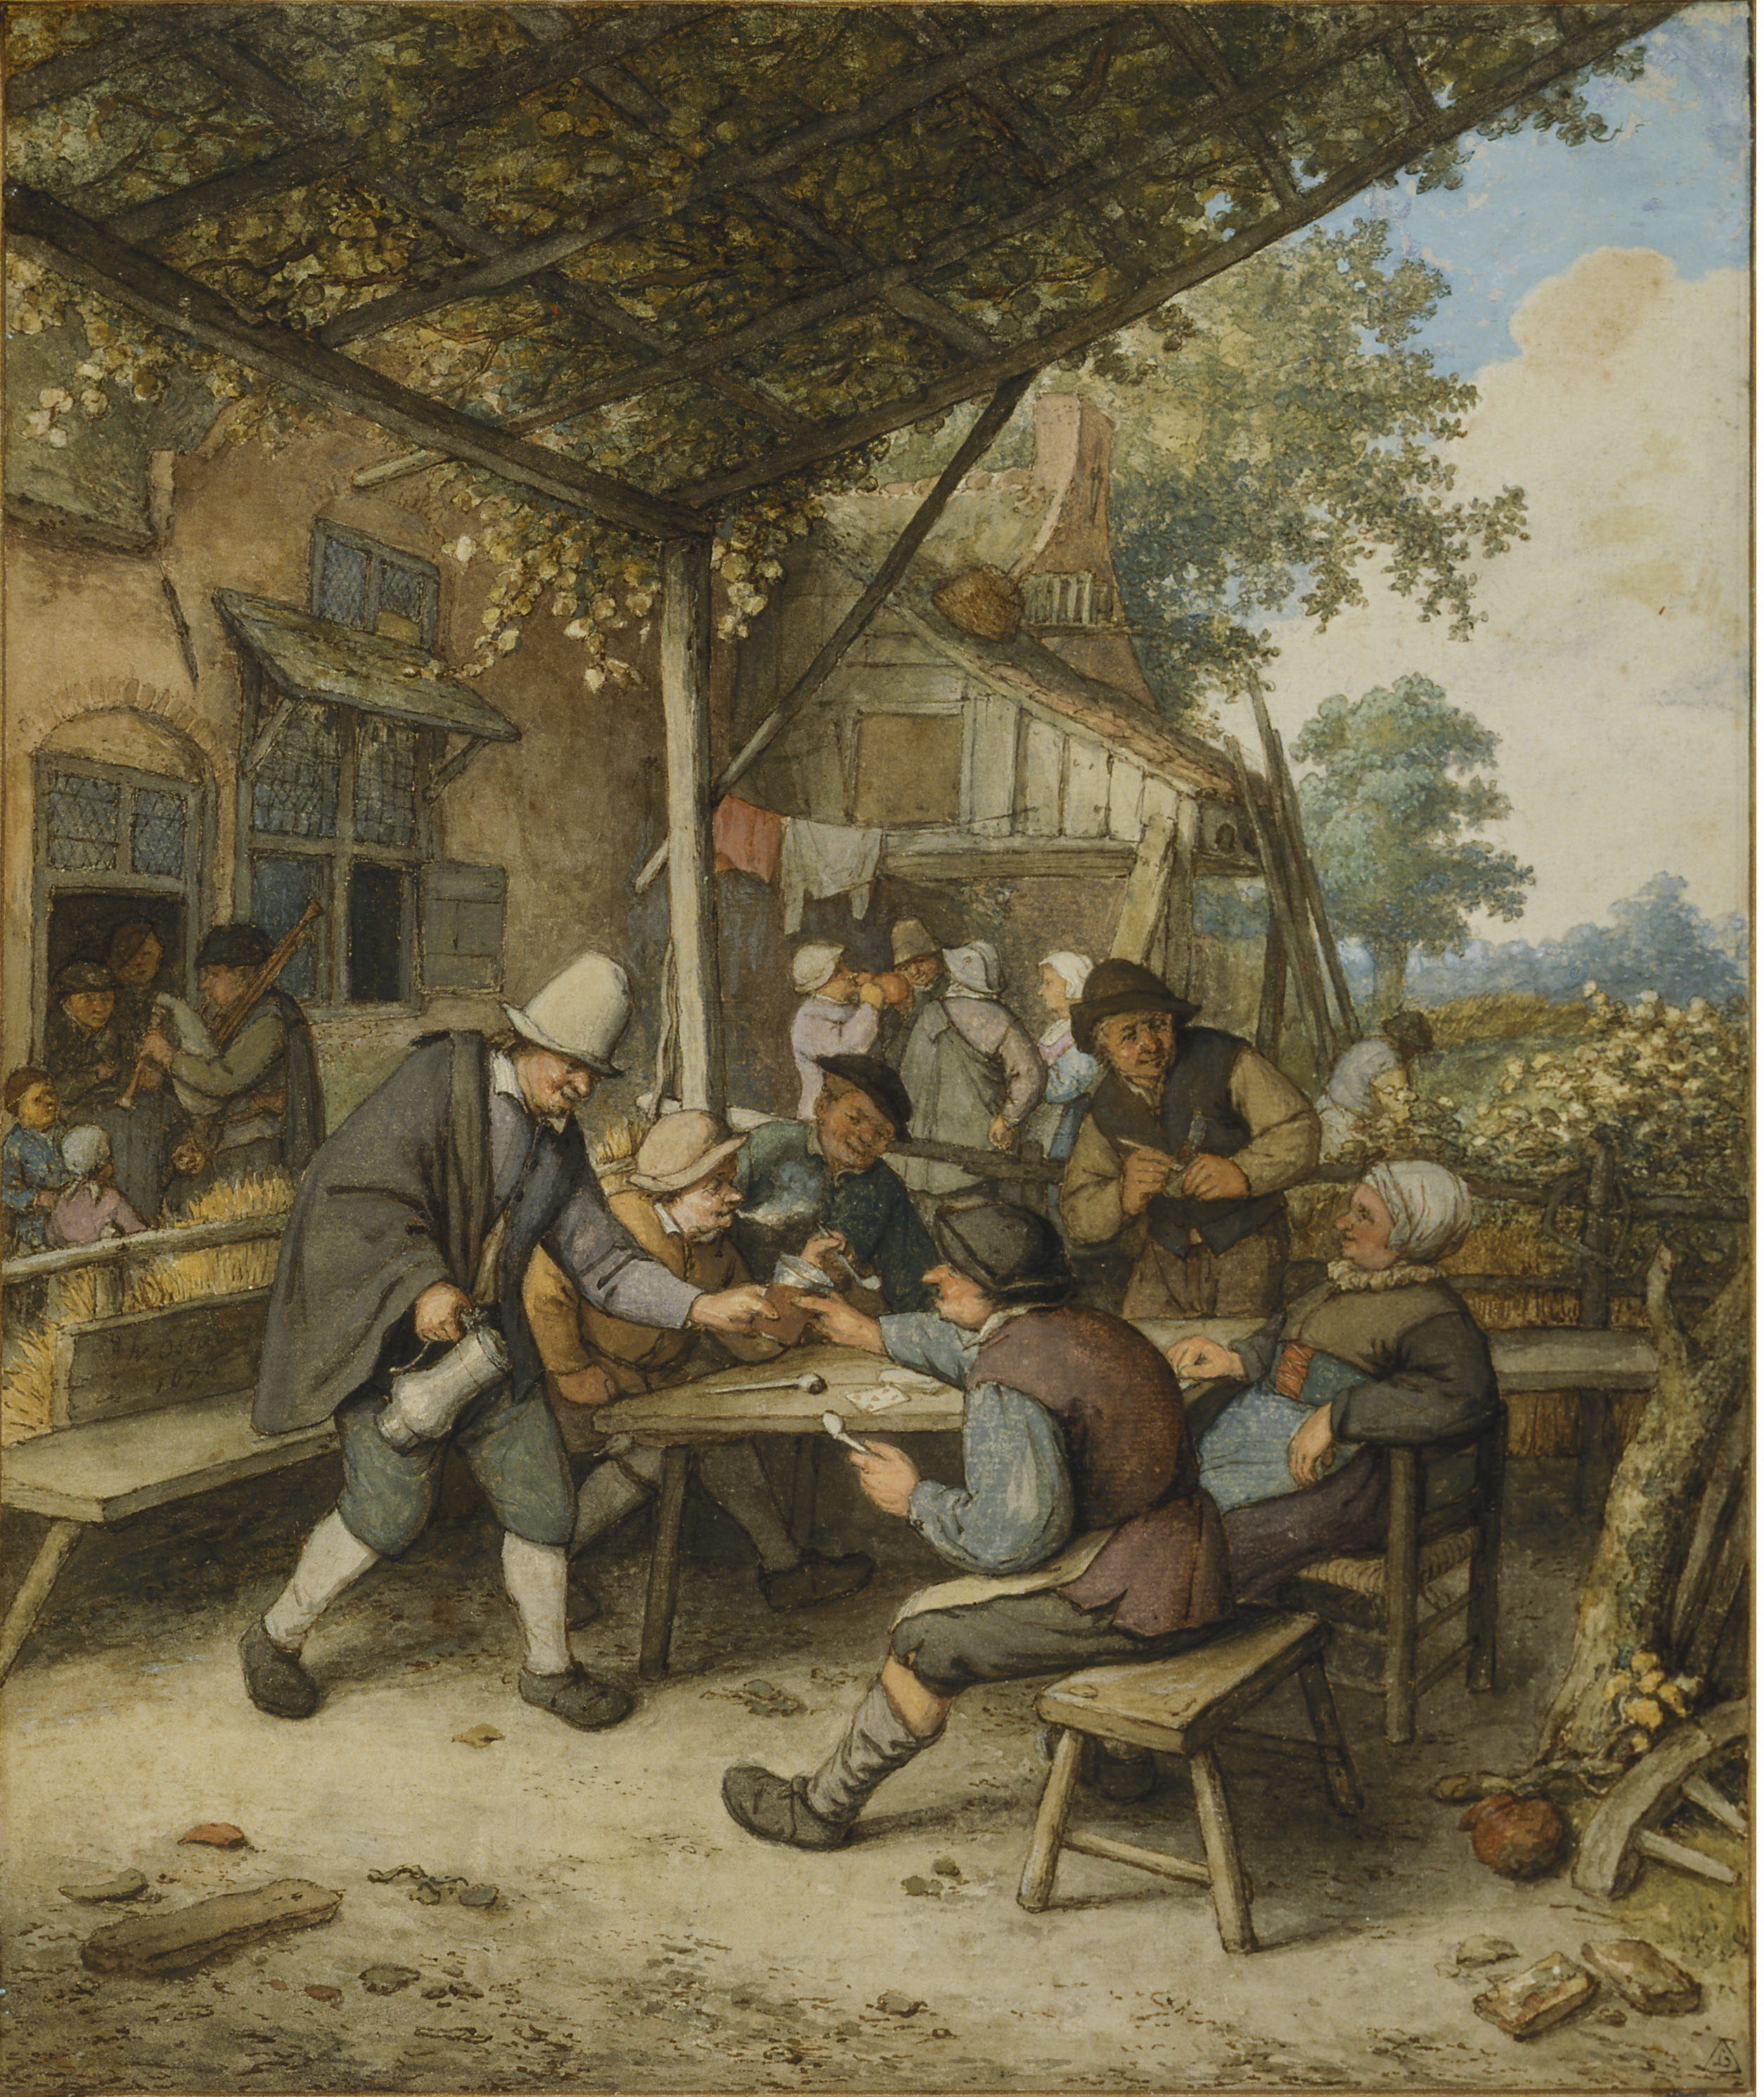 Smokers and drinkers at a table under a trellis - Adriaen van Ostade